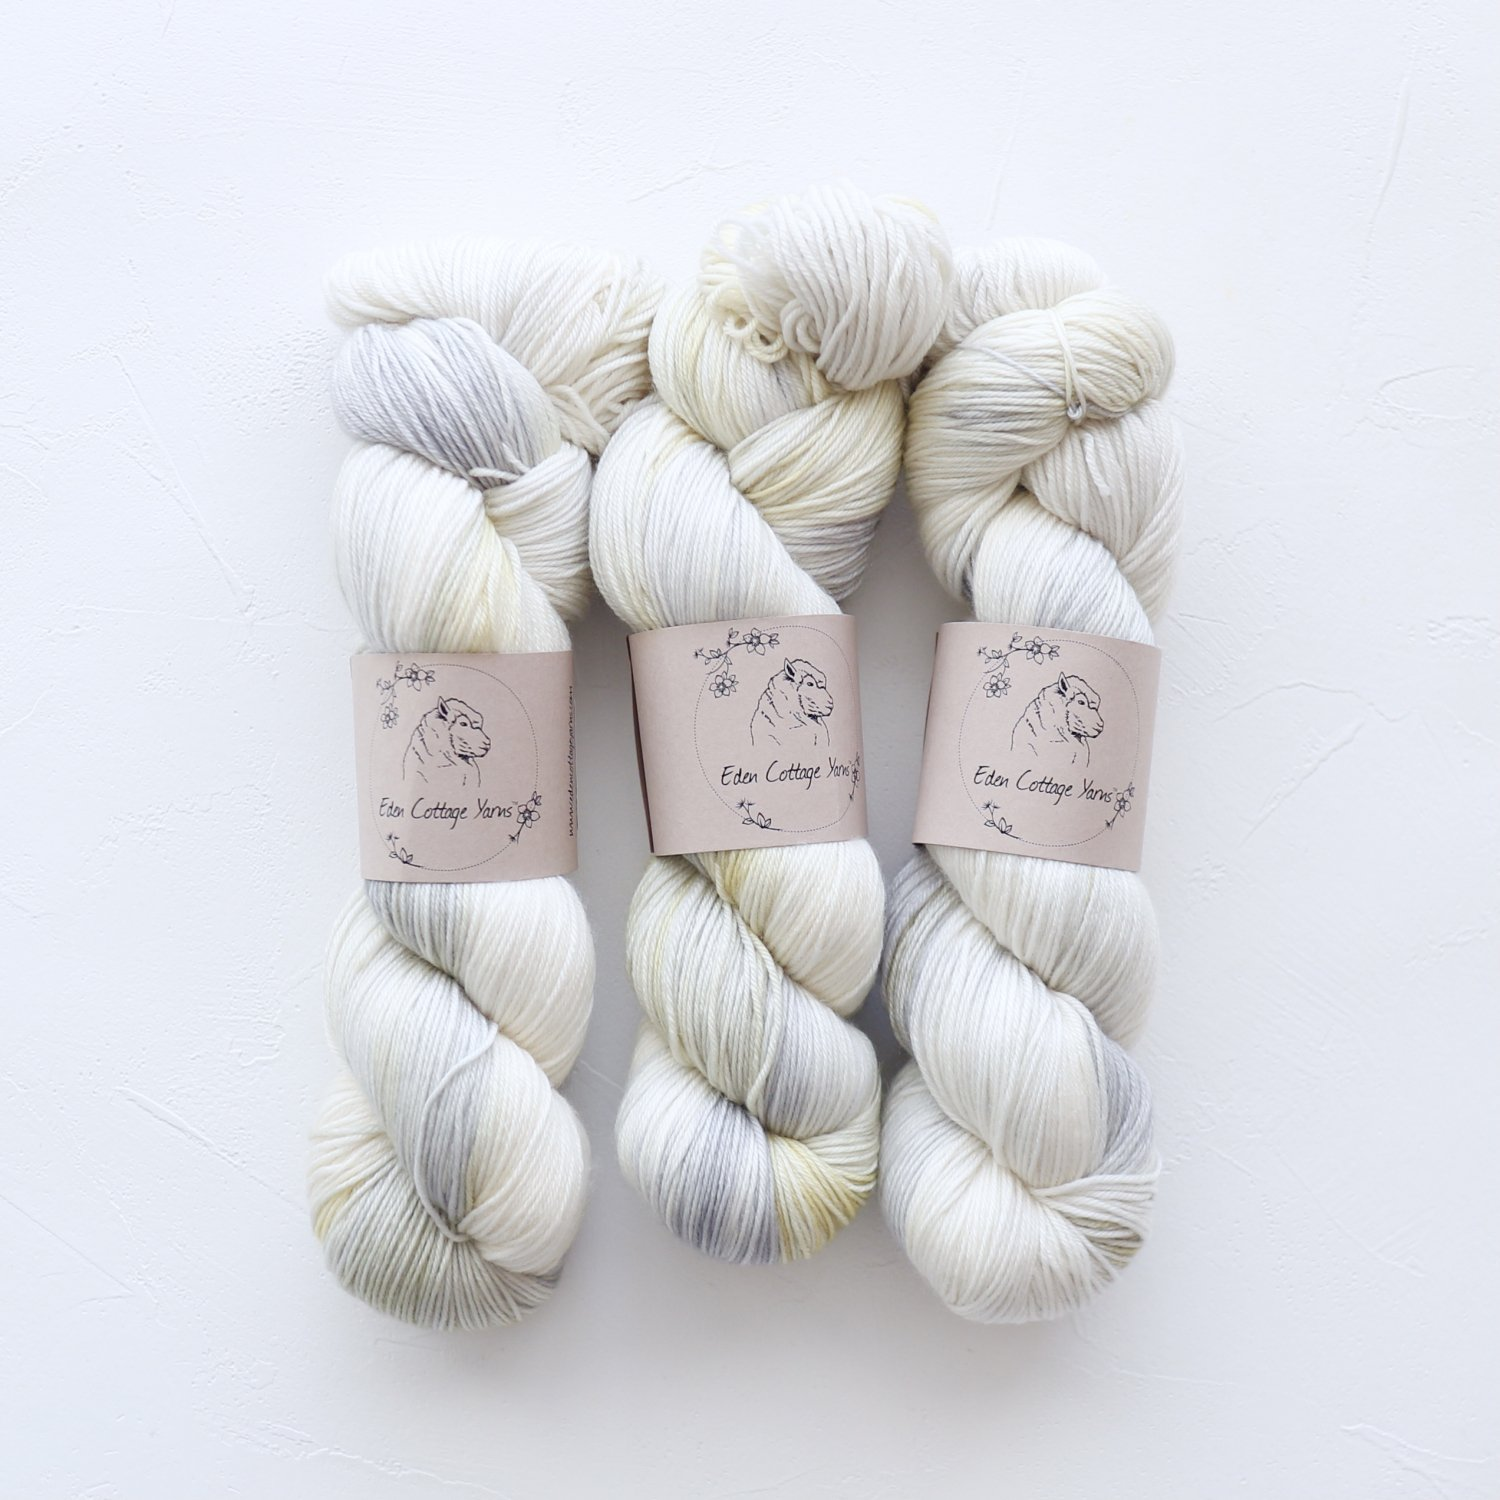 【Eden Cottage Yarns】<br>Pendle 4ply<br>Goldfinch